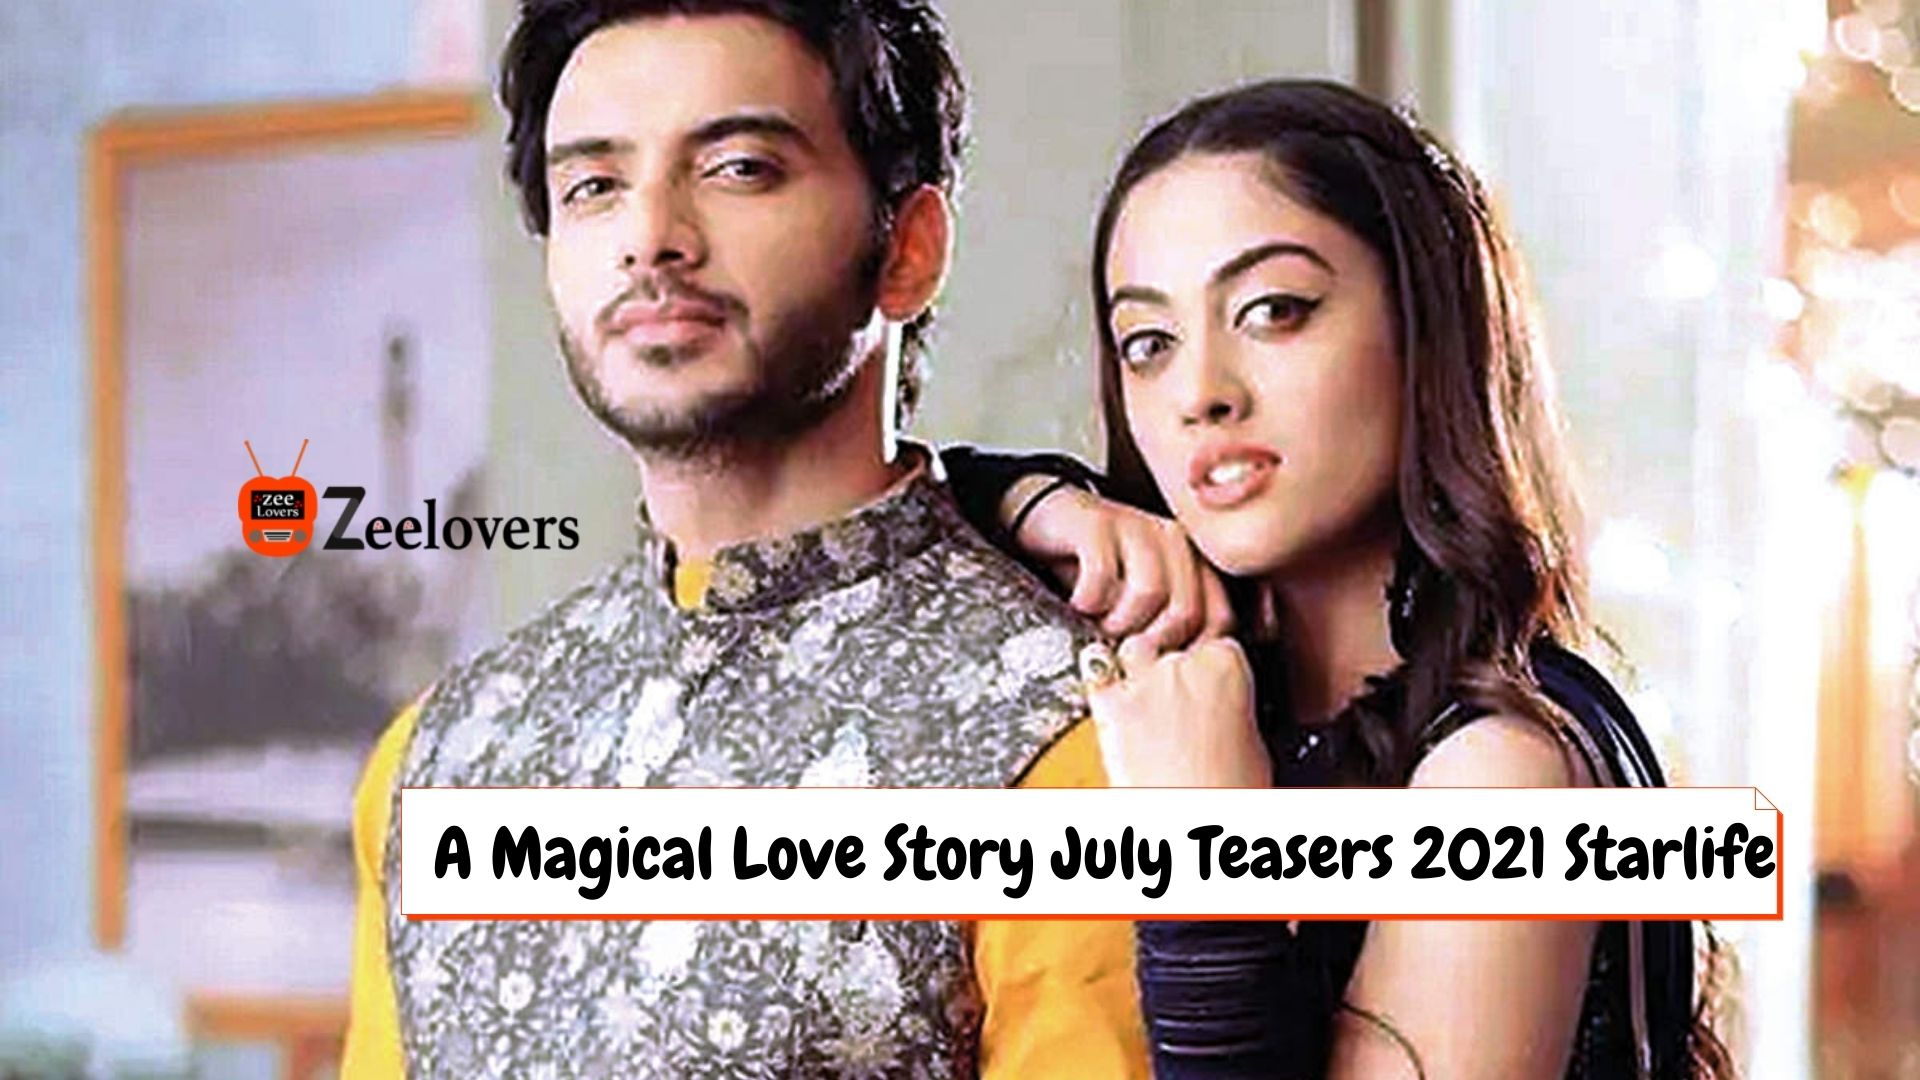 A Magical Love Story July Teasers 2021 Starlife